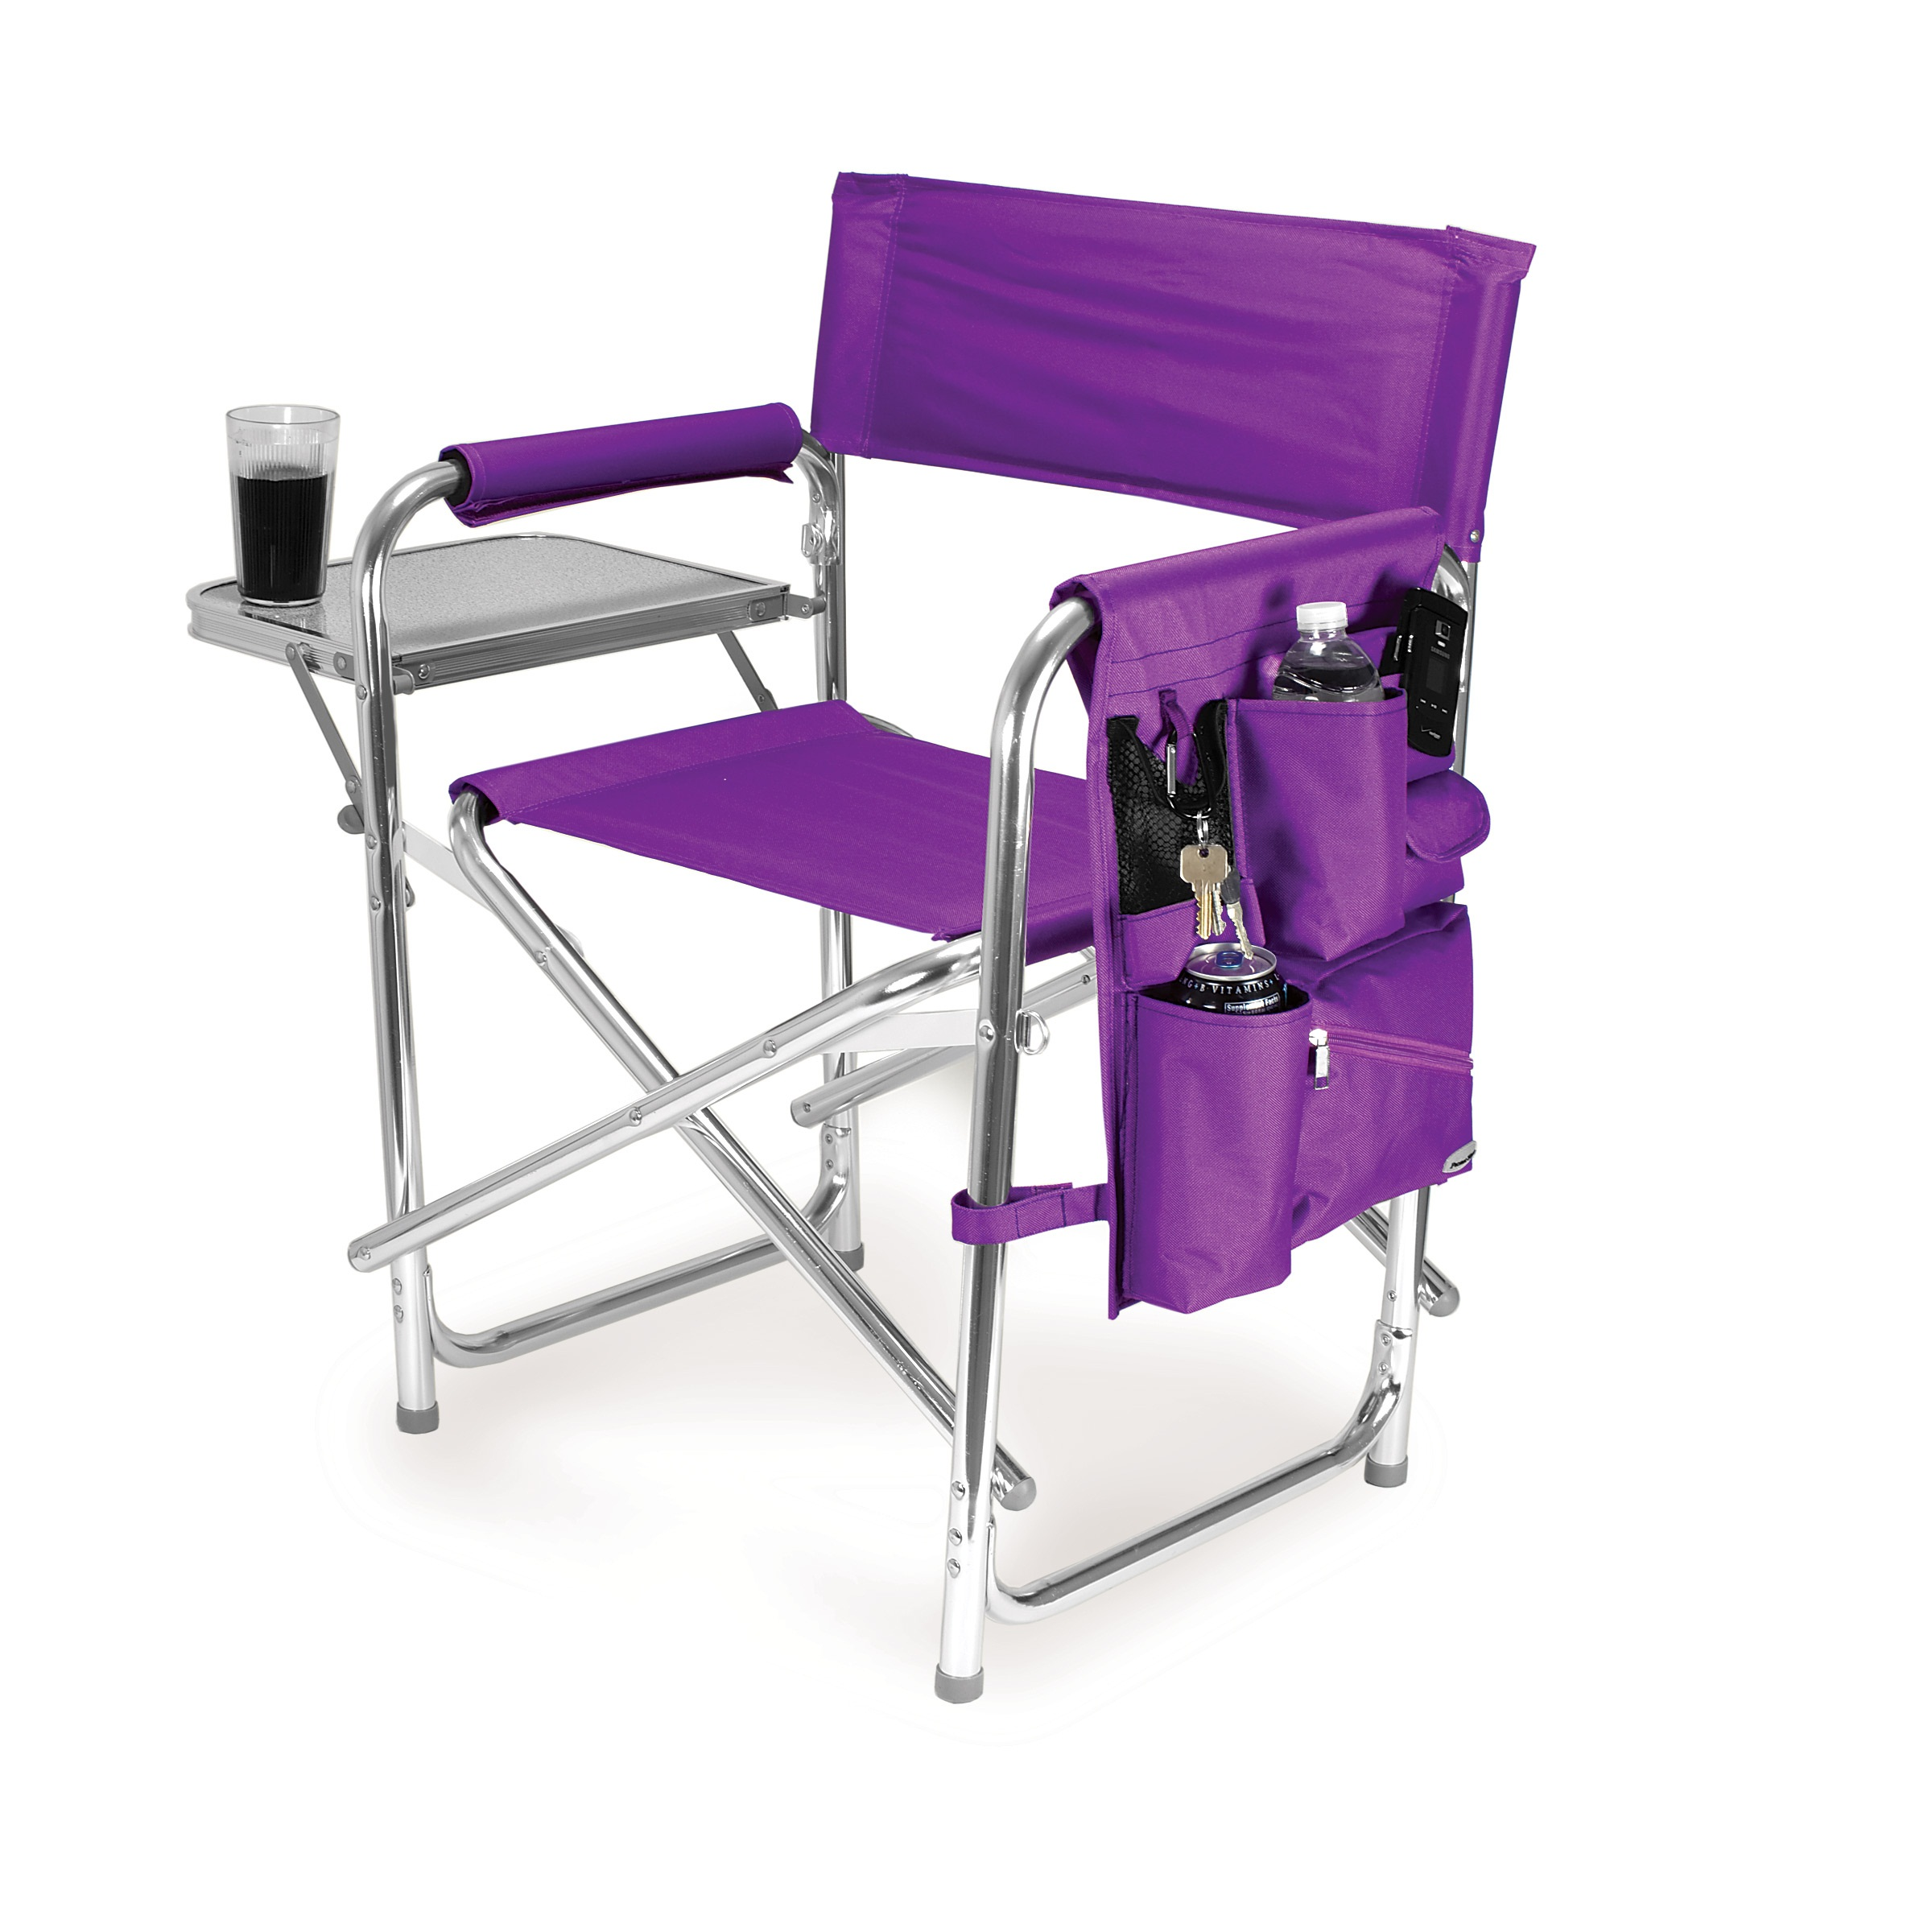 Picnic Time Purple Portable Folding Sports Camping Chair